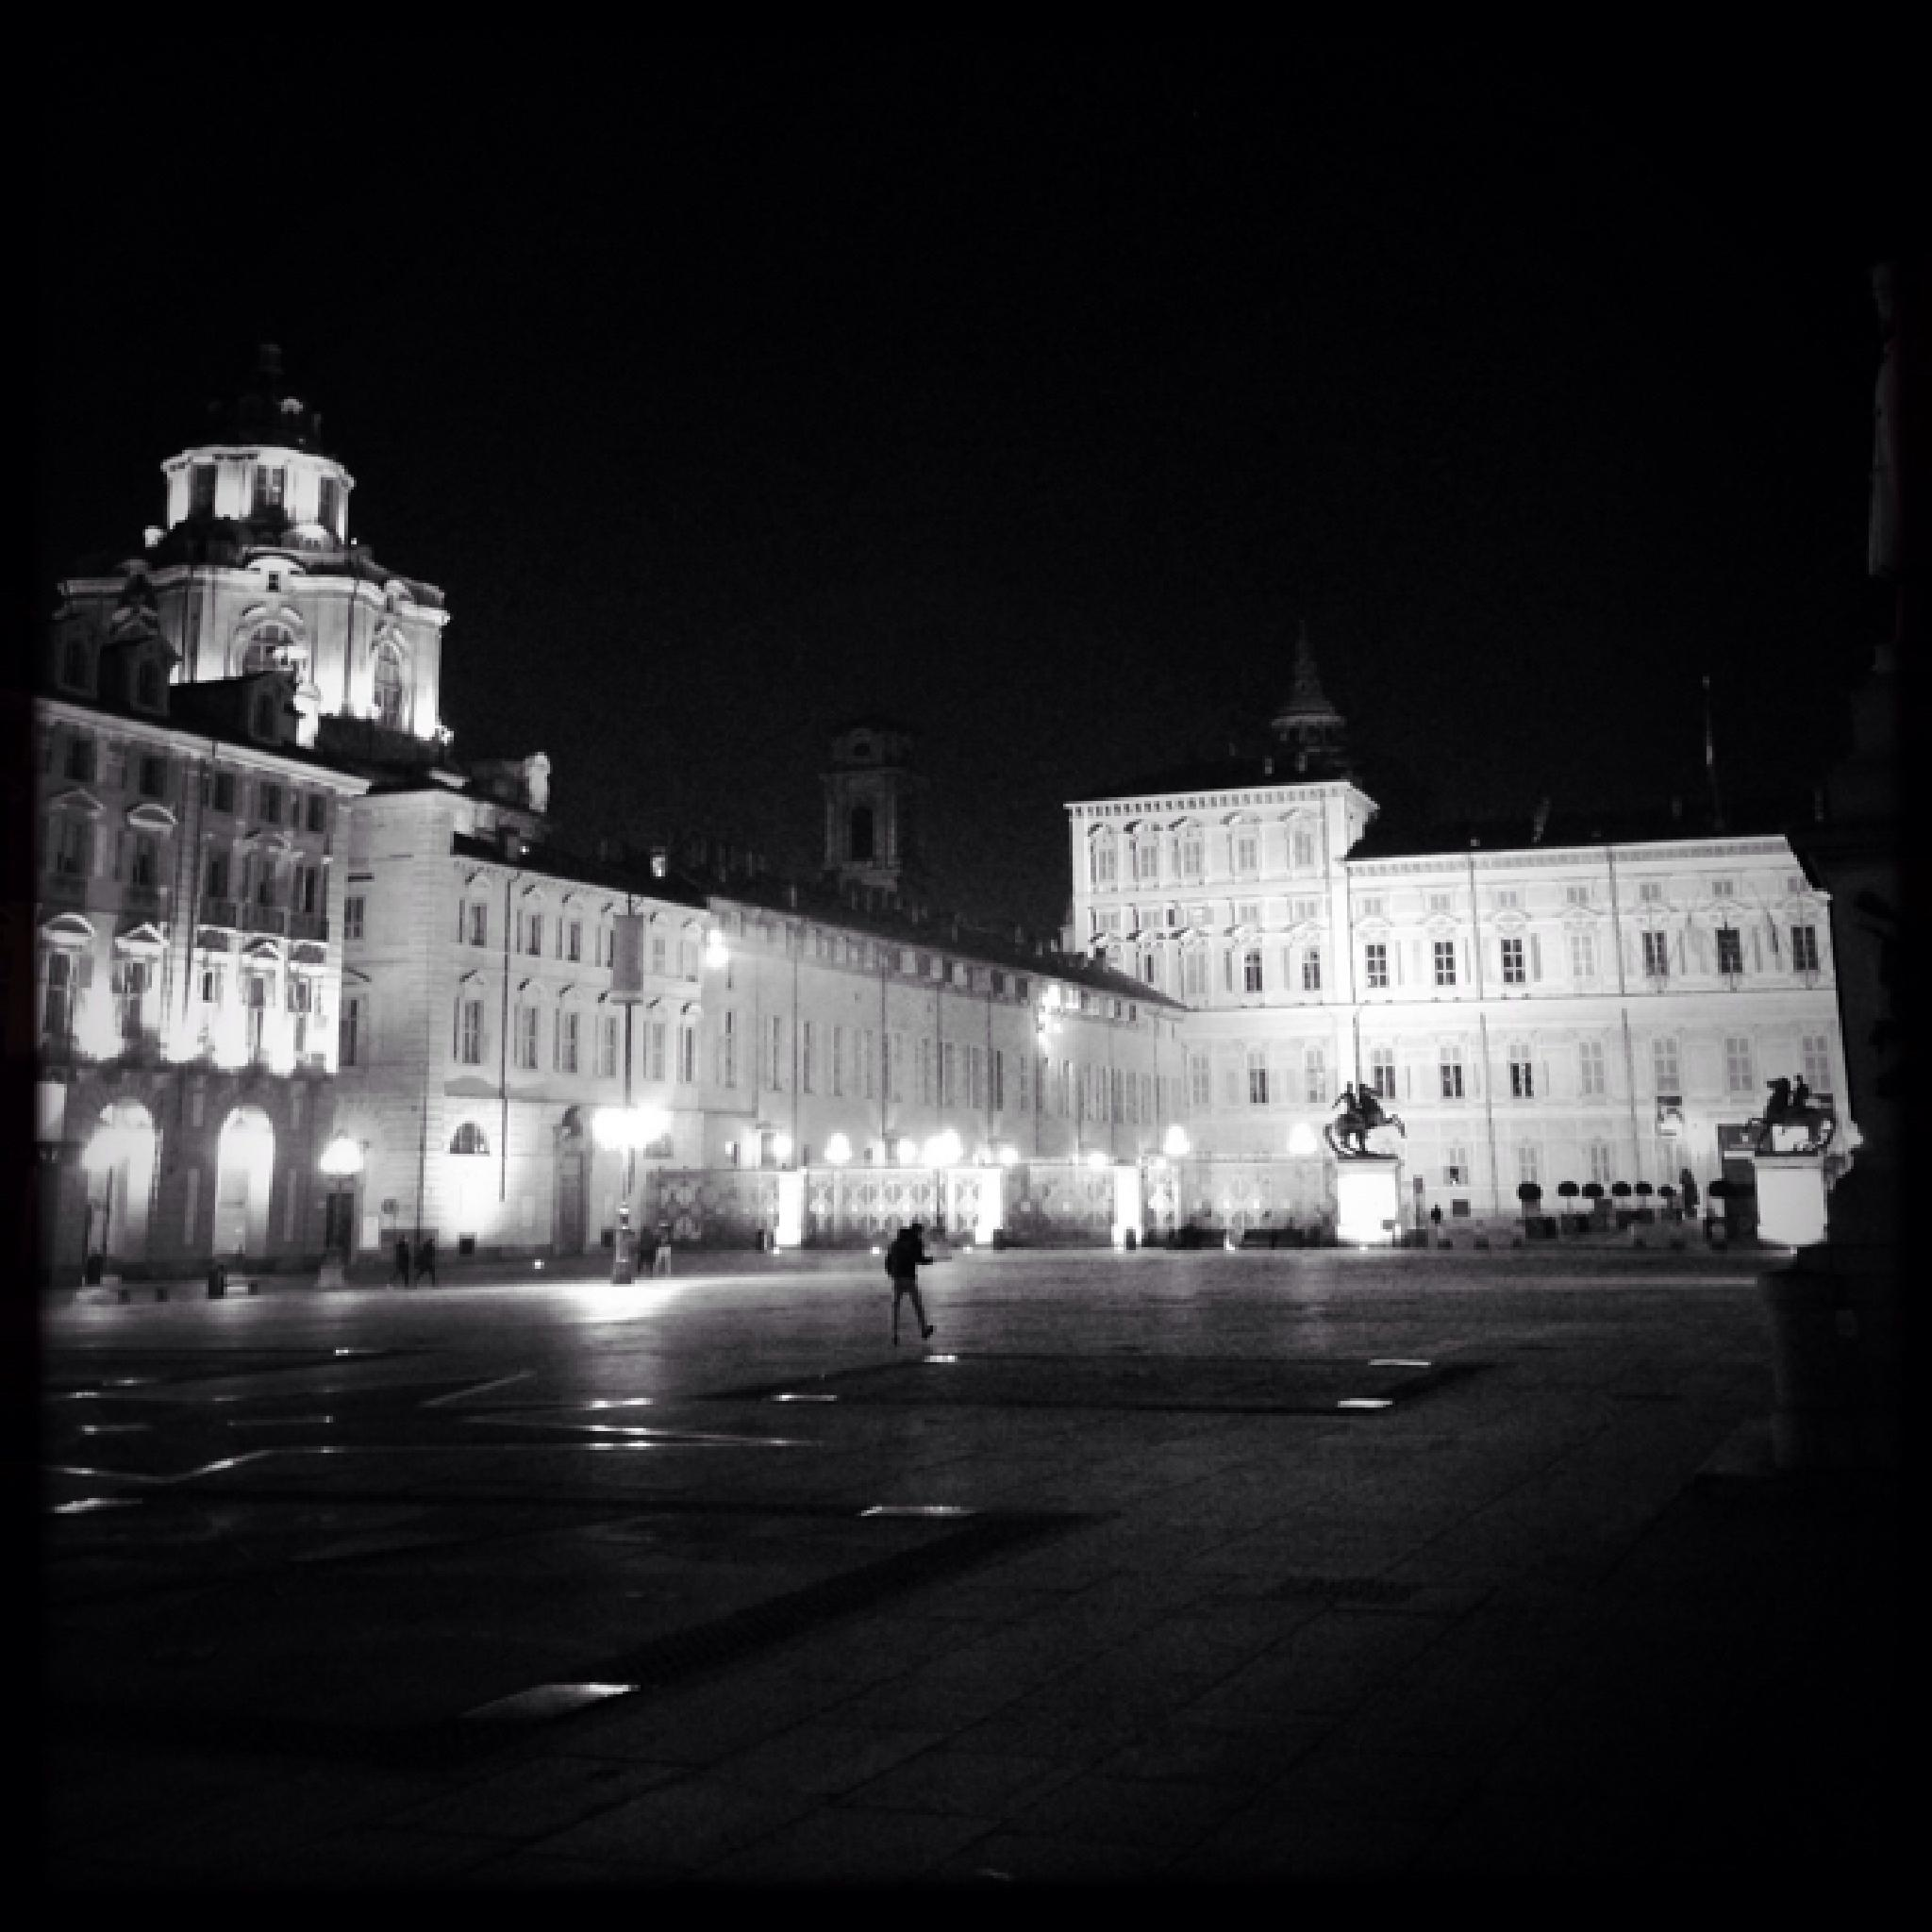 Night in Turin - Piazza Castello by Silvano Pupella